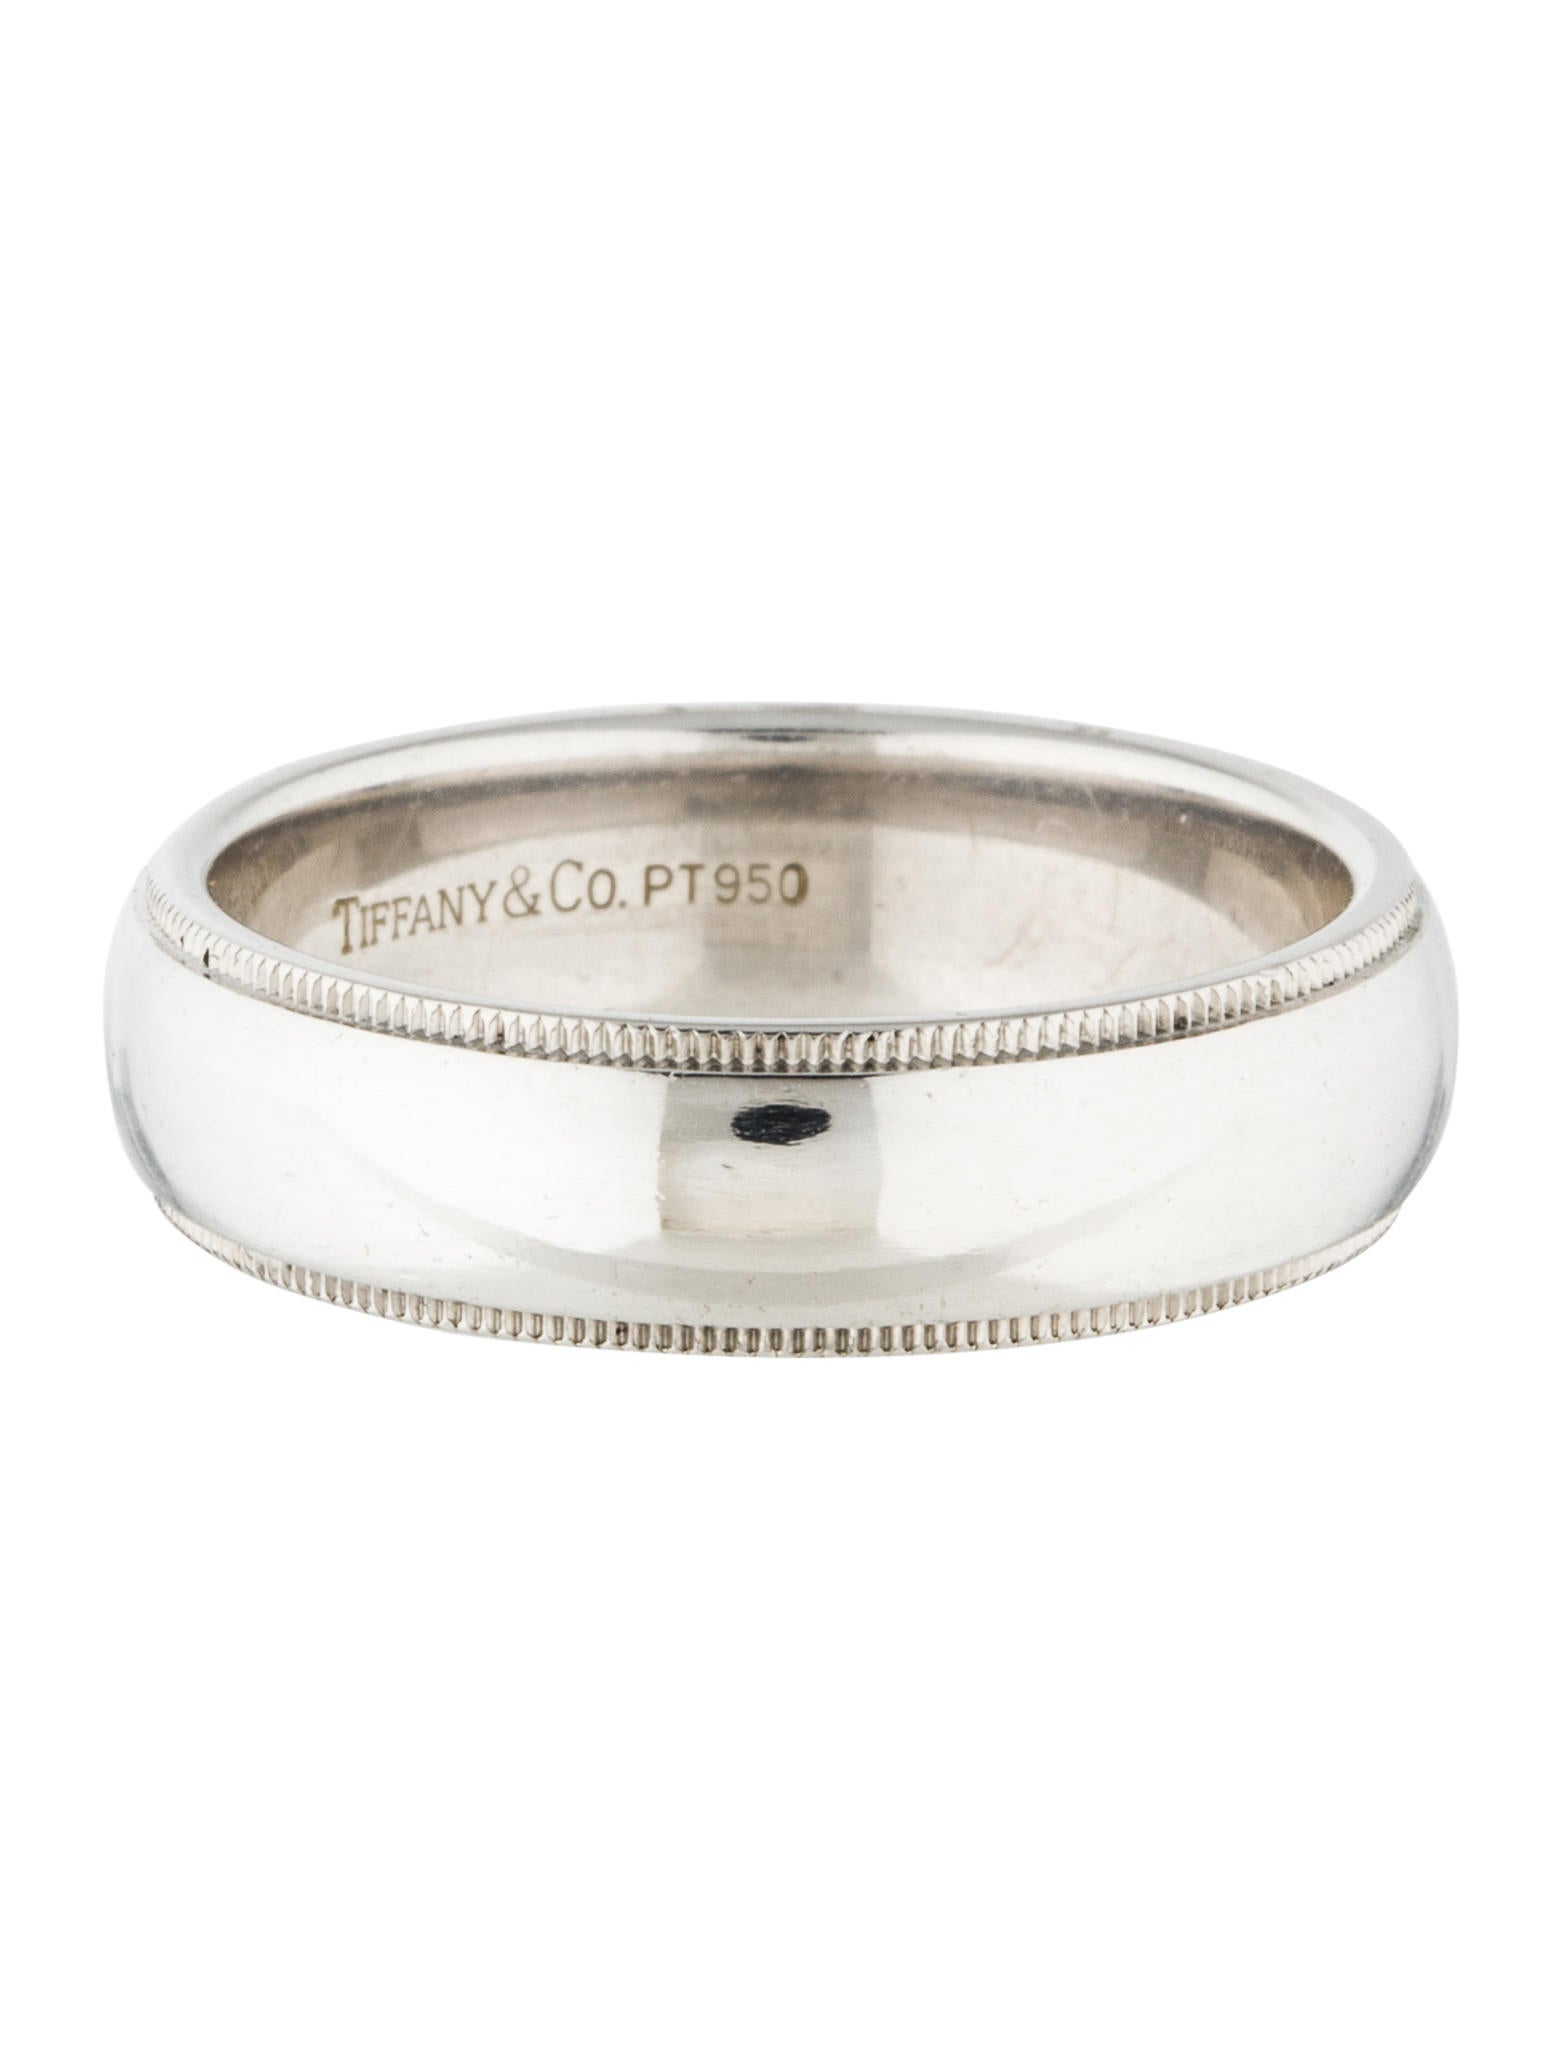 co platinum milgrain wedding band rings